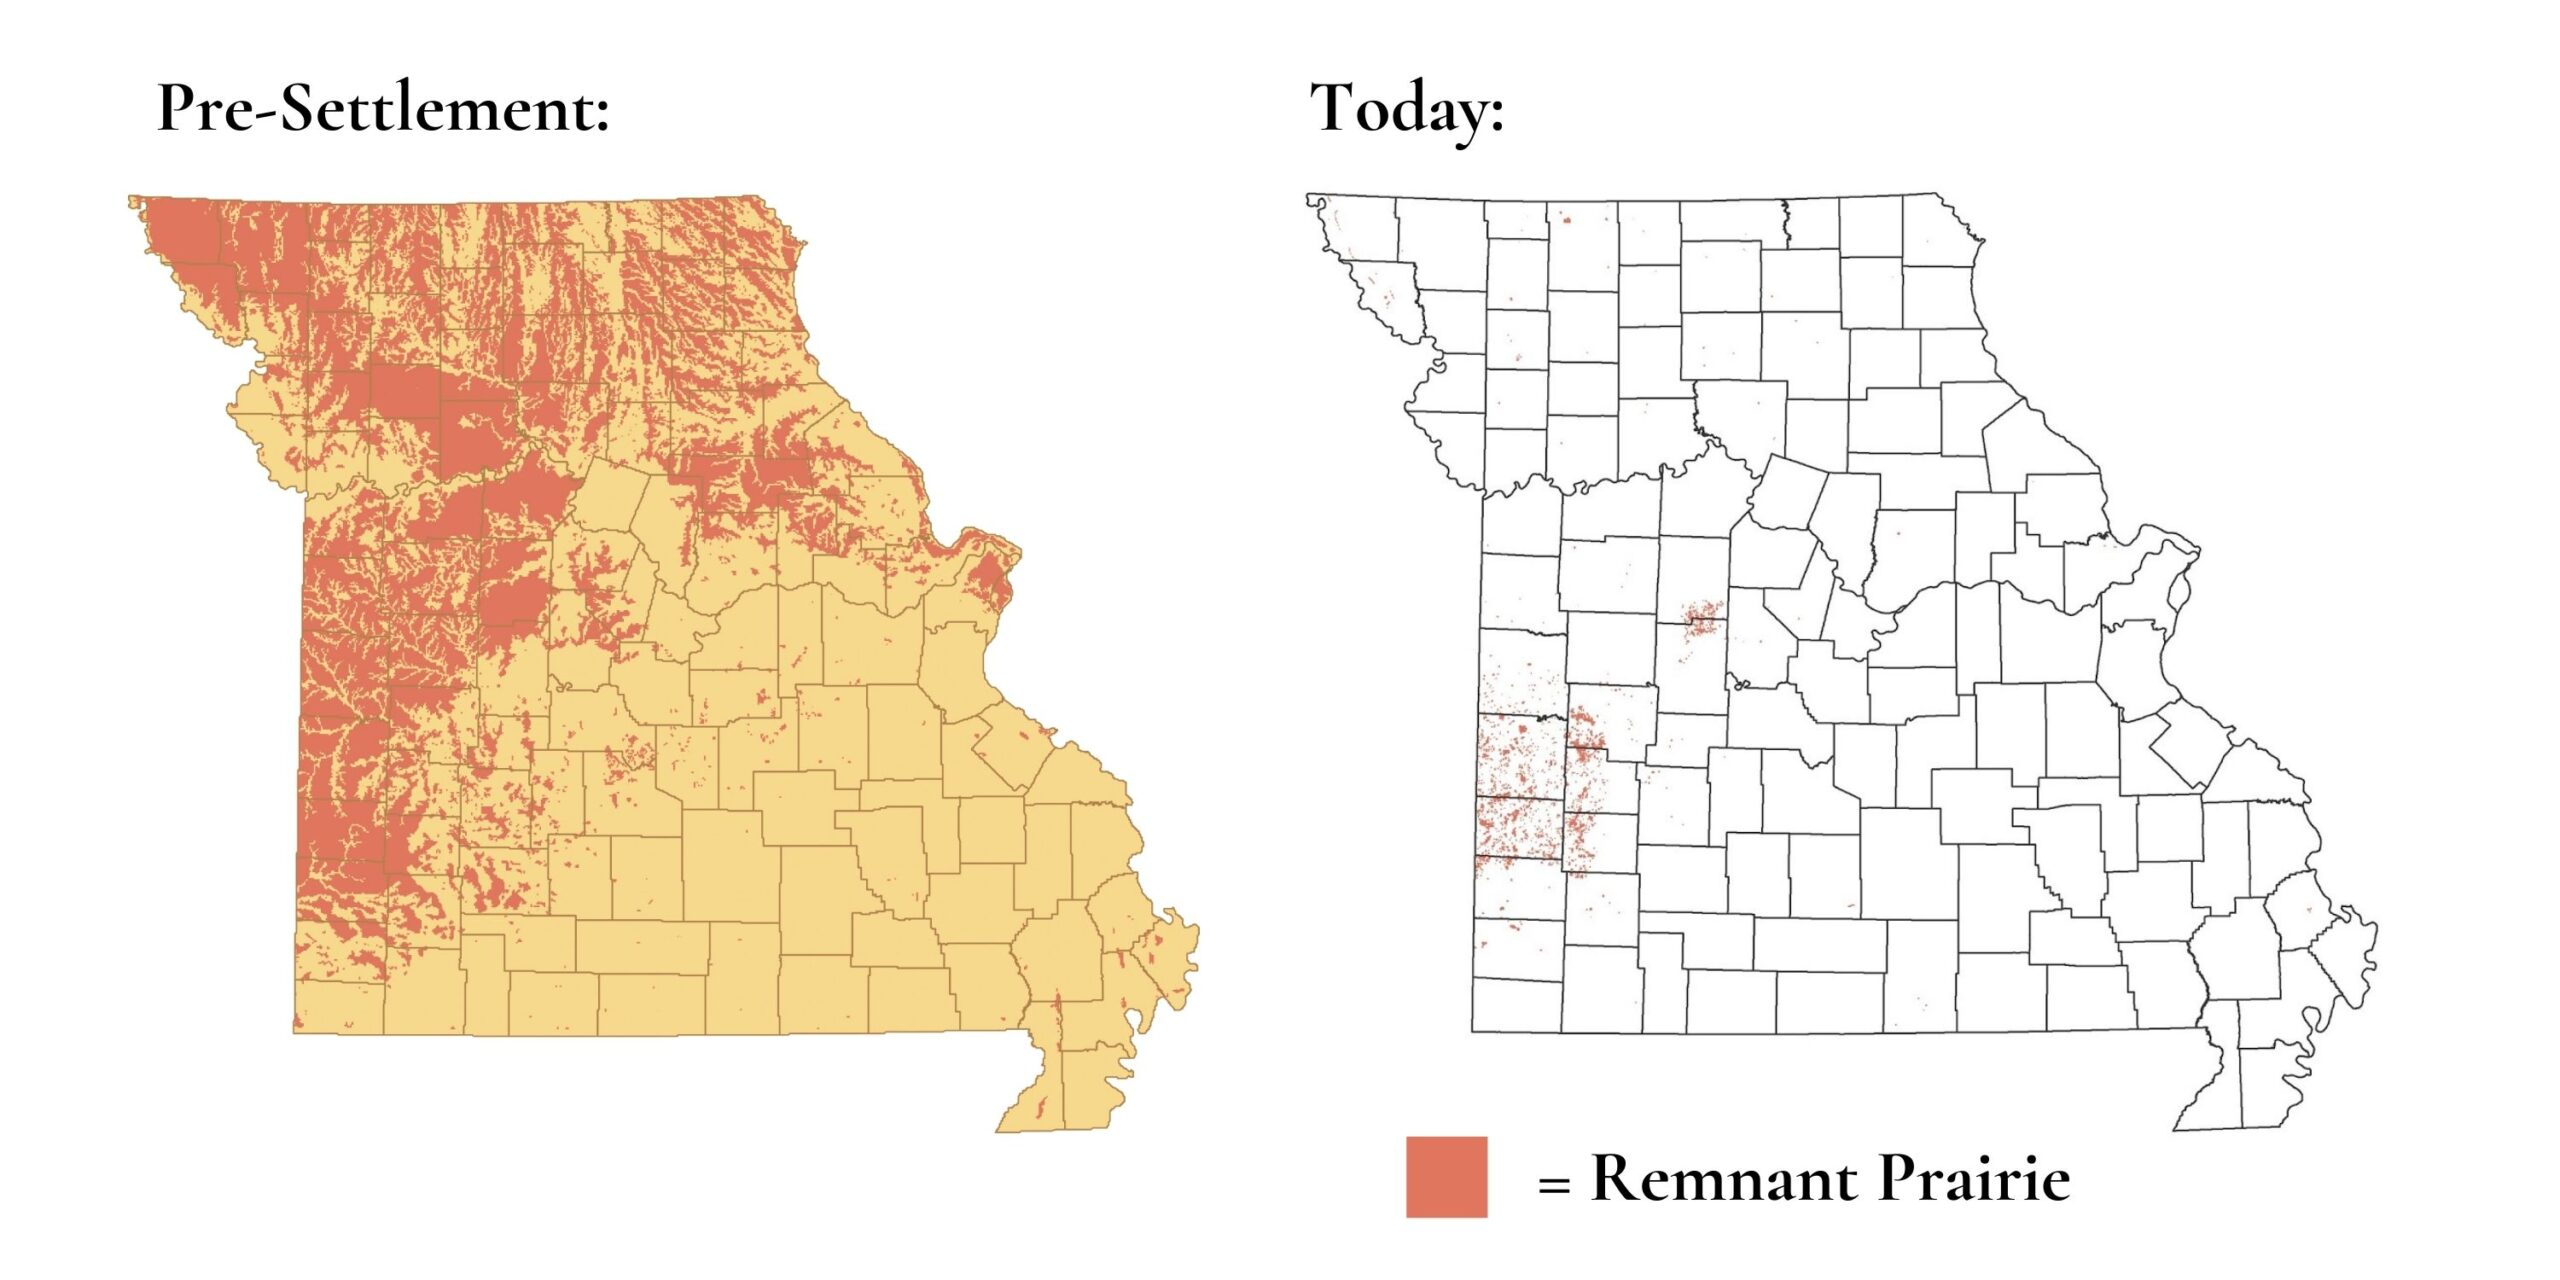 Two maps of Missouri, the first one with large sections of dark orange representing 15 million acres of prairie pre-settlement, and the second map with very little dark orange, showing the fewer than 60,000 scattered acres of prairie today